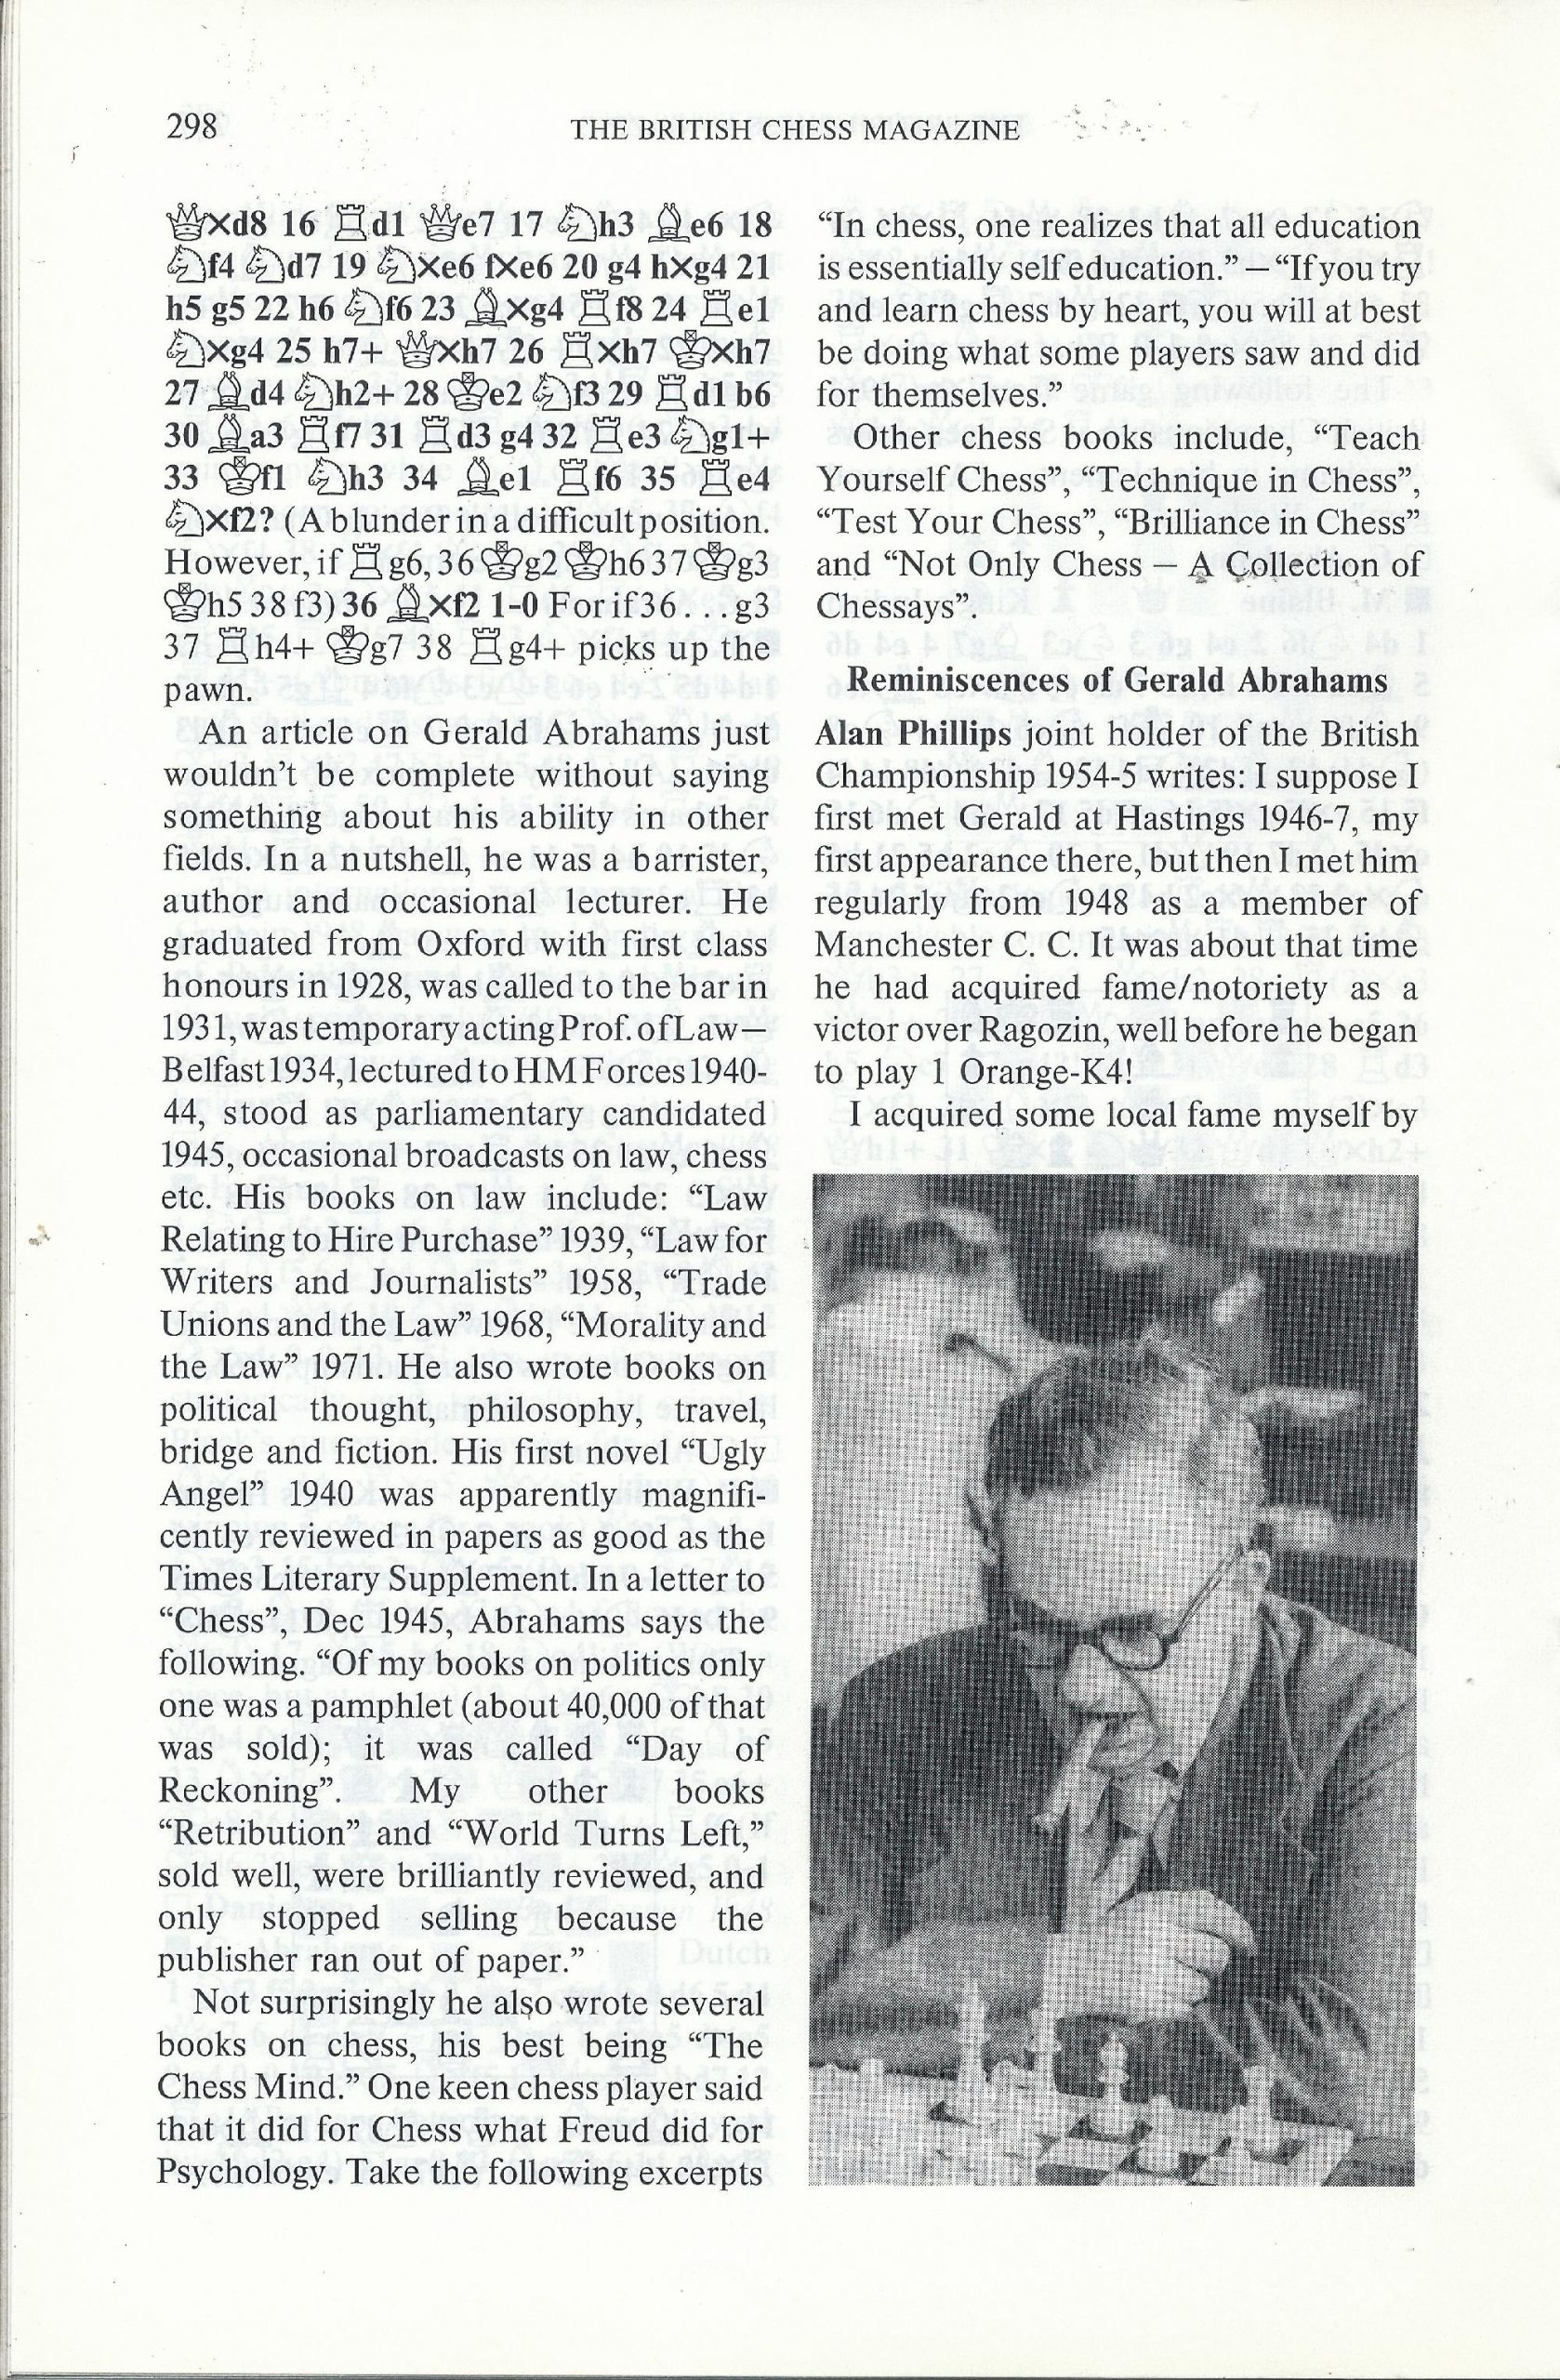 British Chess Magazine, Volume CVIII (1988), Number 7 (July), pp. 298